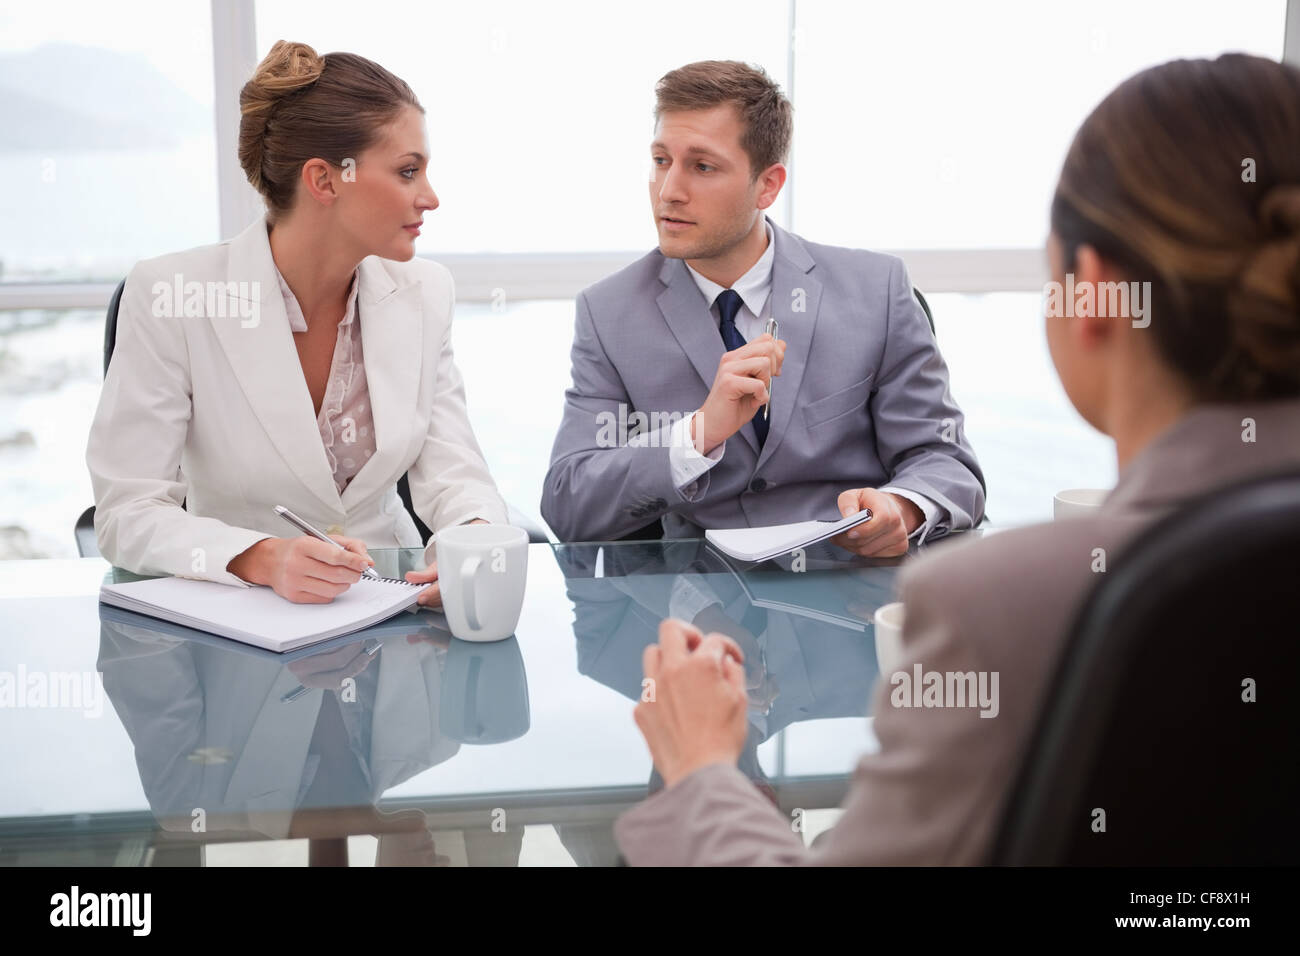 Business team deliberating with lawyer - Stock Image